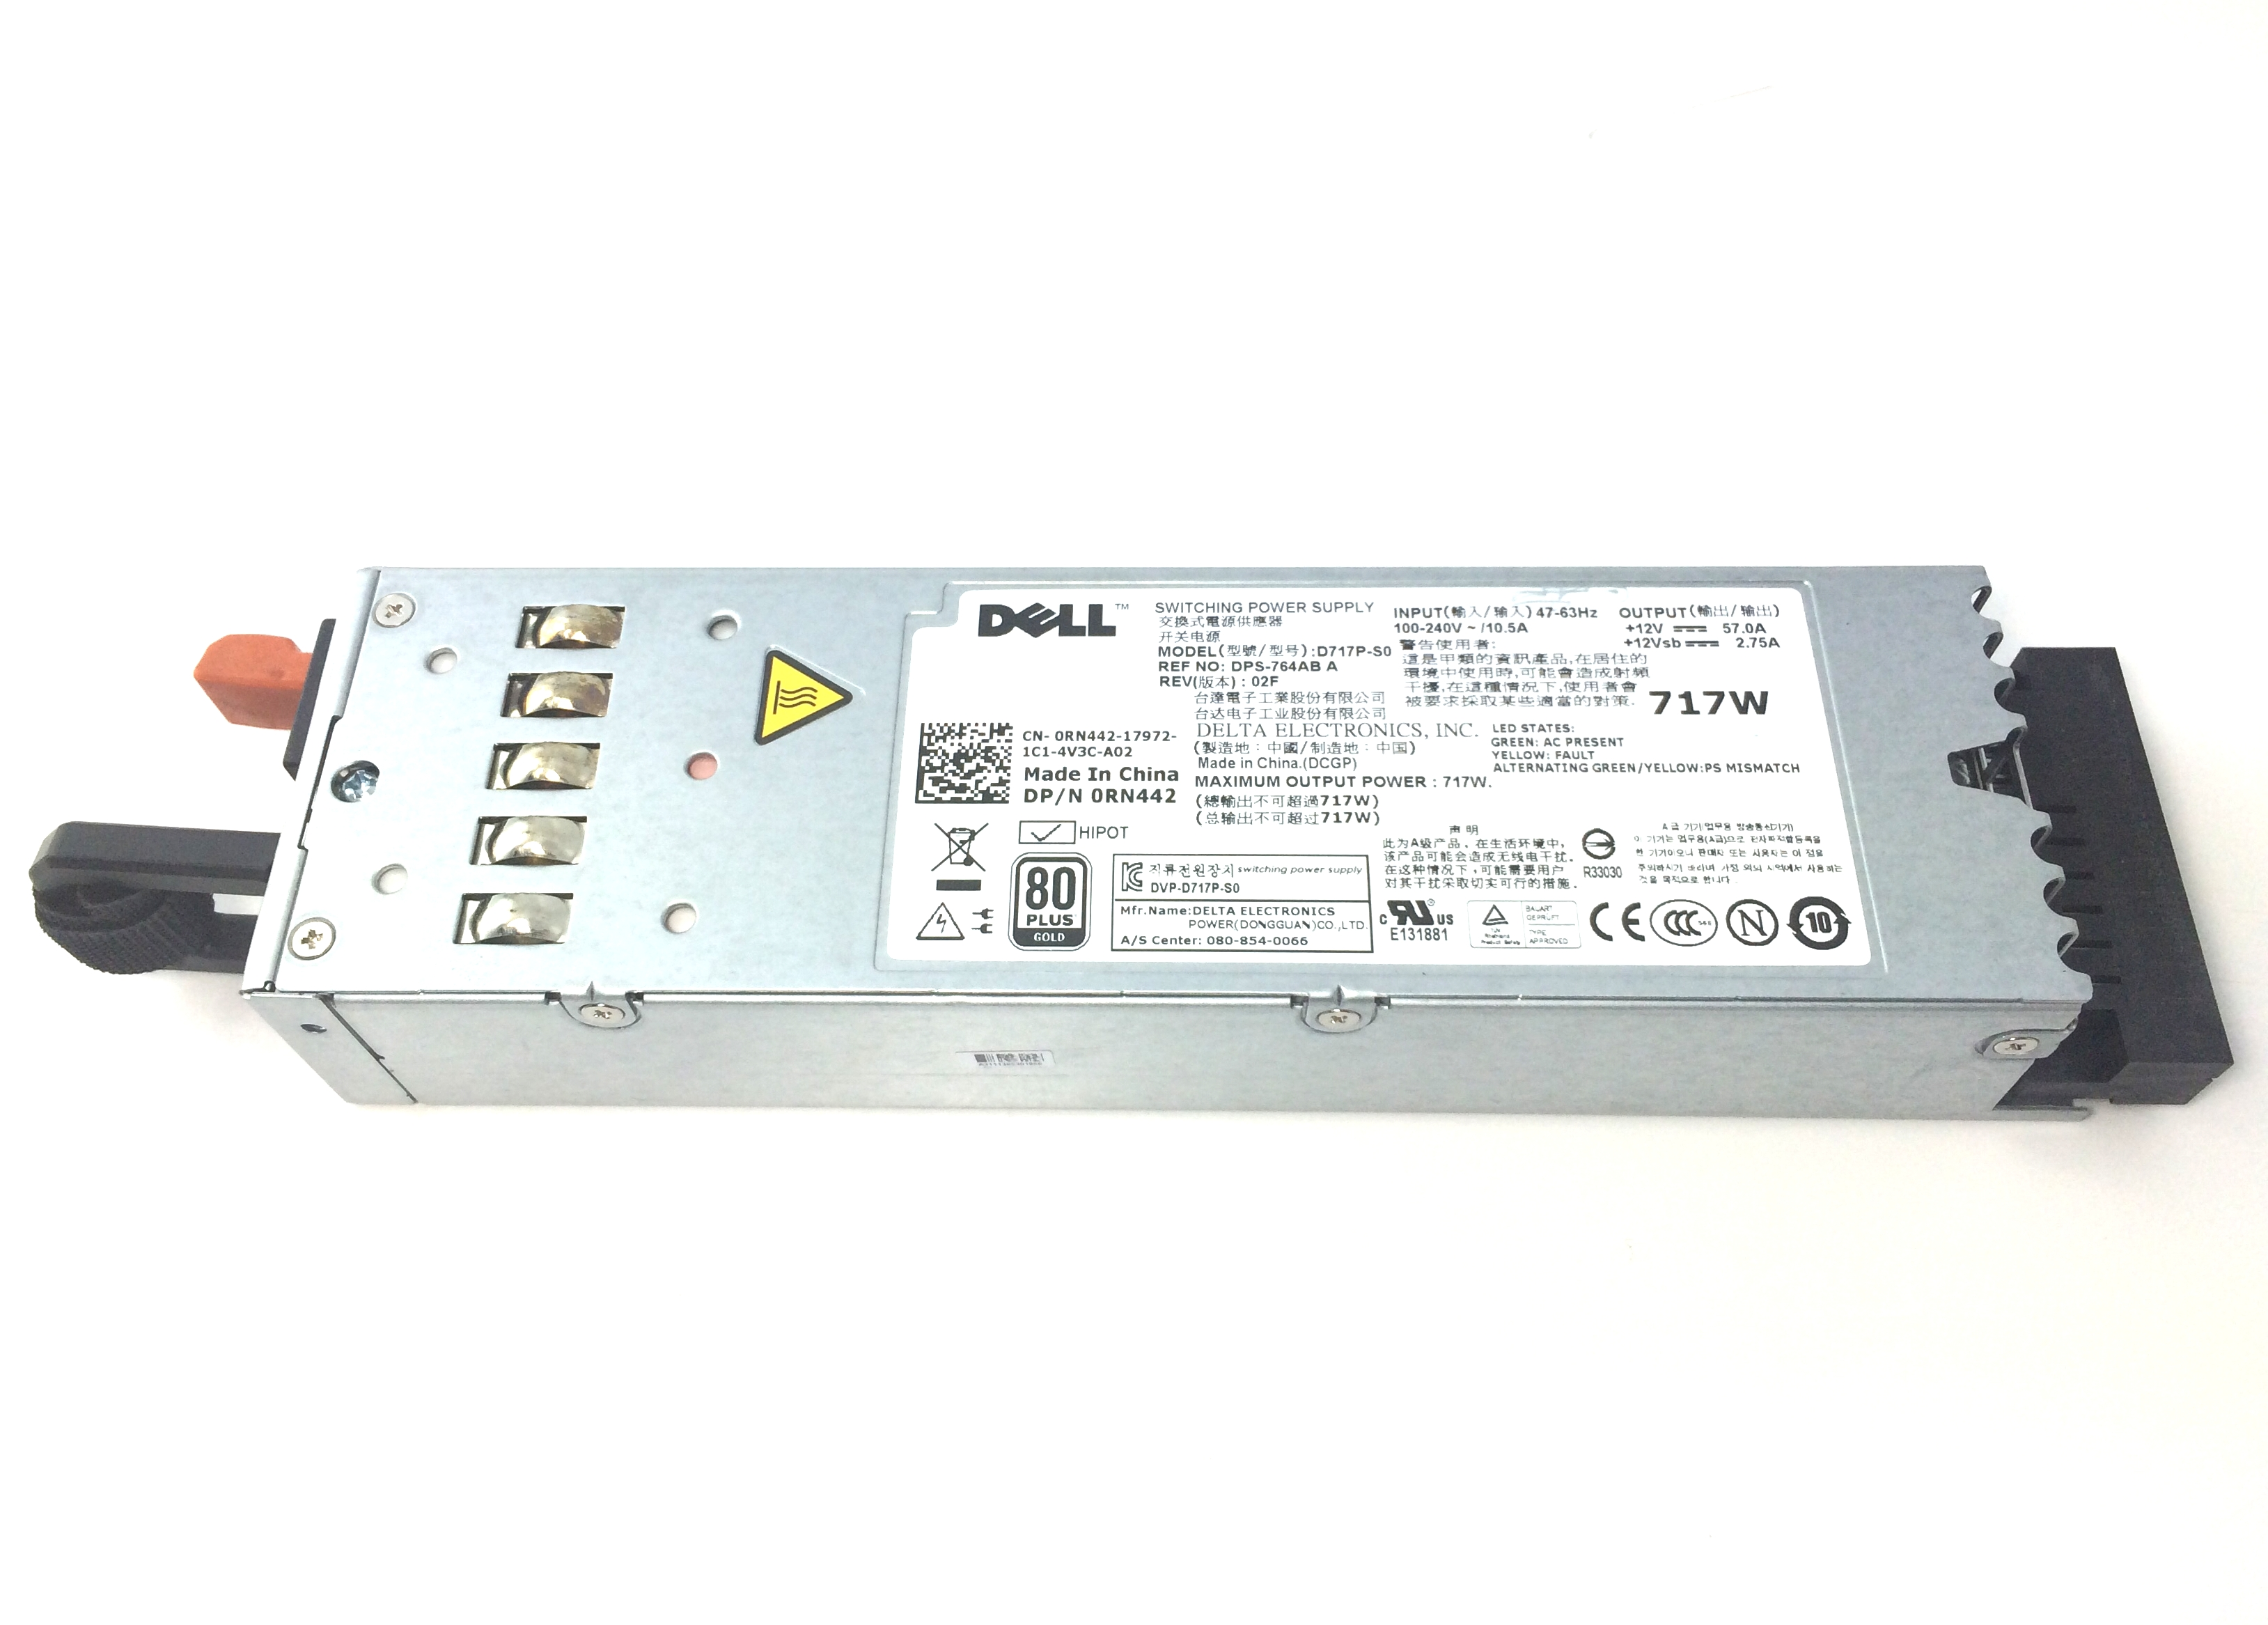 DELL POWEREDGE R610 717W REDUNDANT POWER SUPPLY (RN442)